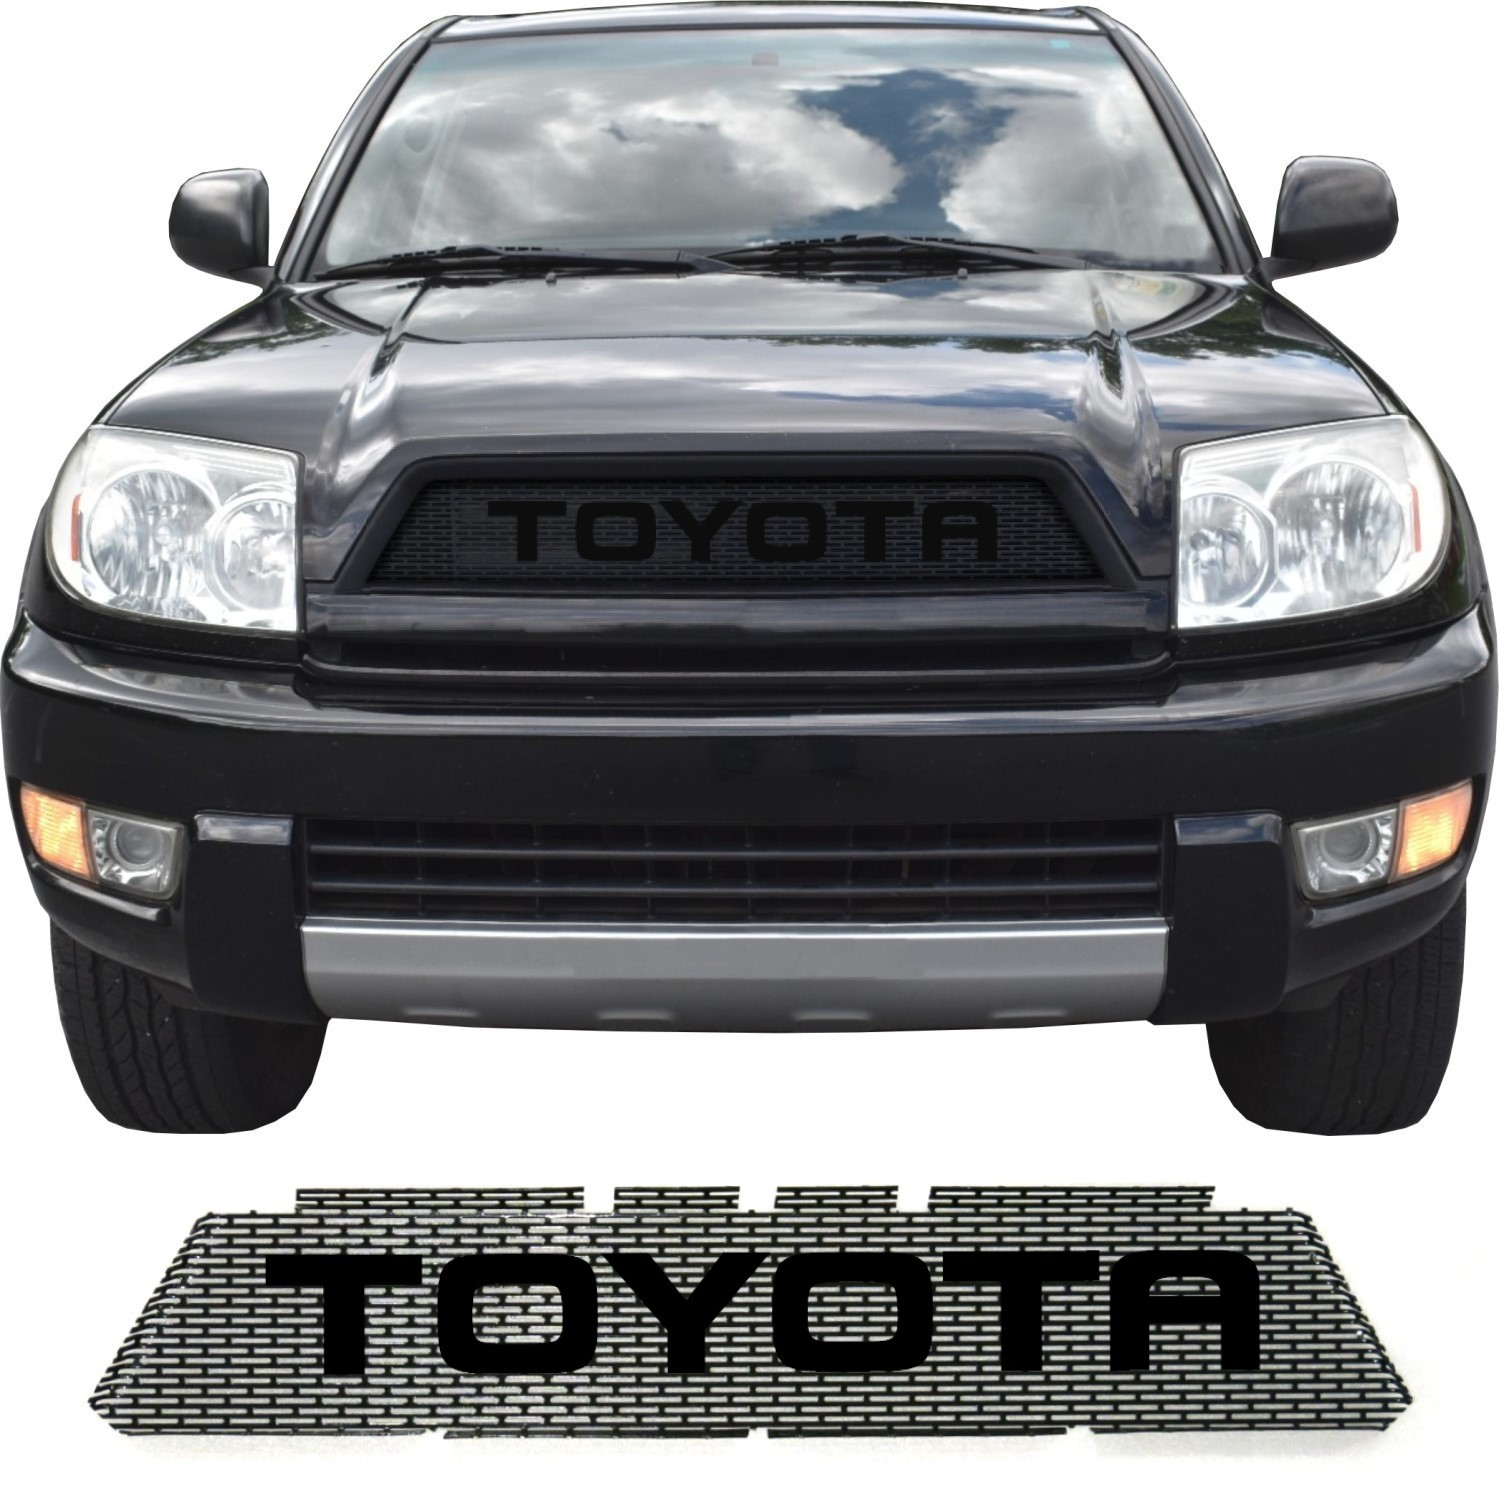 2003-05 Toyota 4Runner Grill Mesh with Big Letters